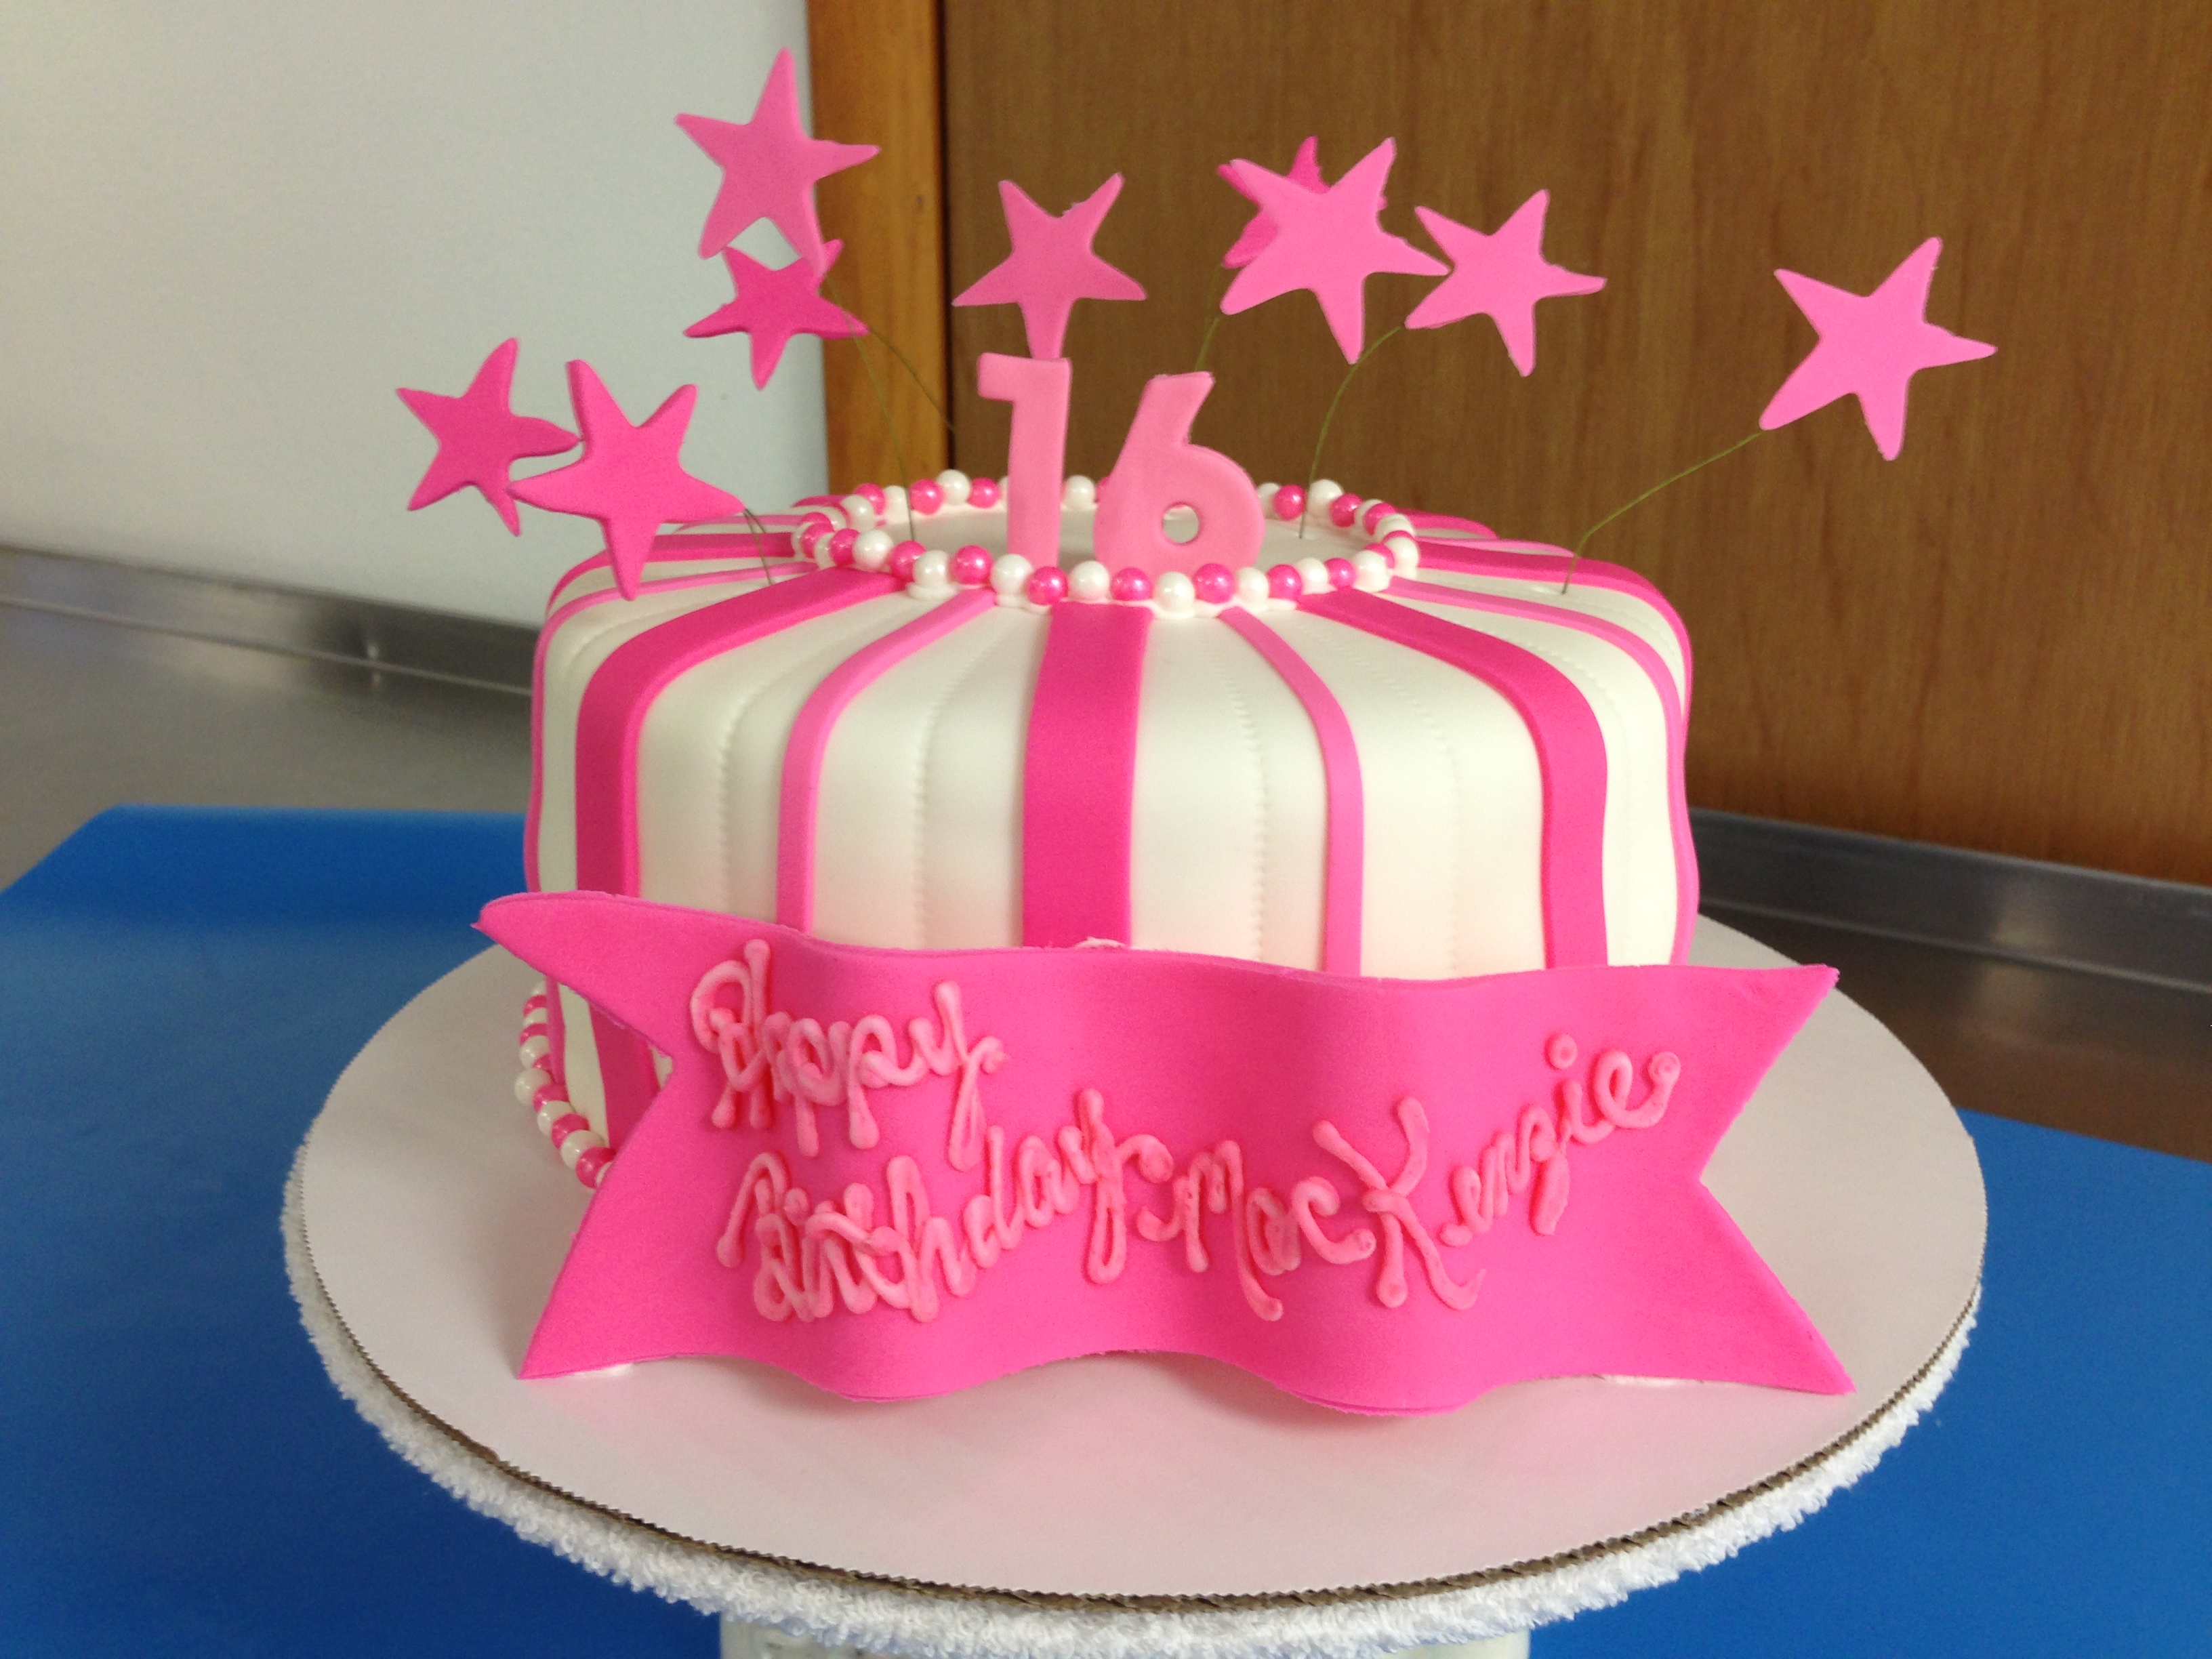 Astonishing All Occasion Cakes Gallery Cakes By Sheila Funny Birthday Cards Online Hendilapandamsfinfo